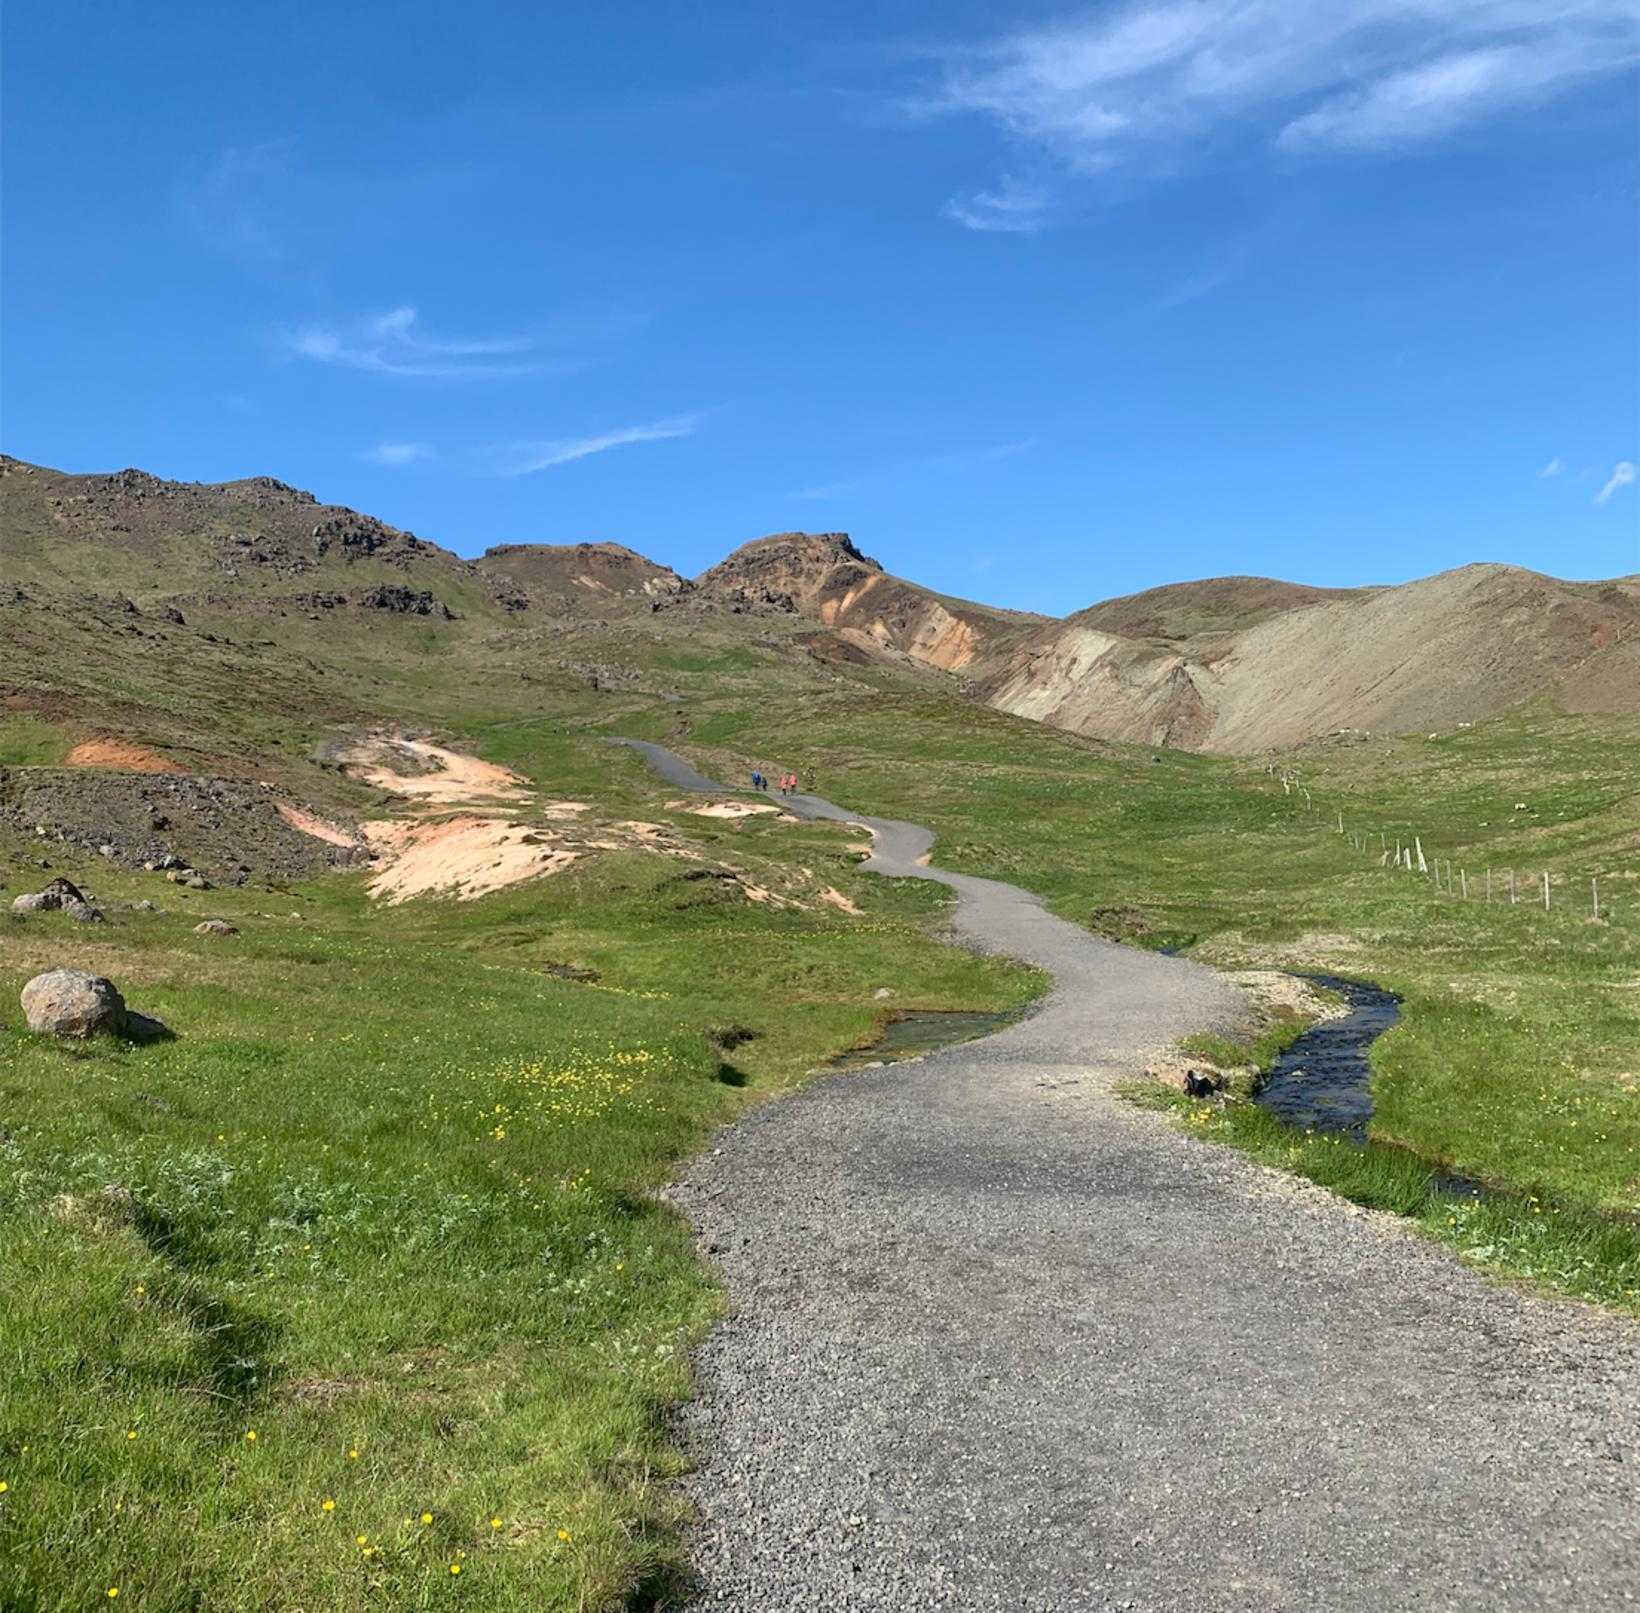 The walking path leads through amazing landscapes.